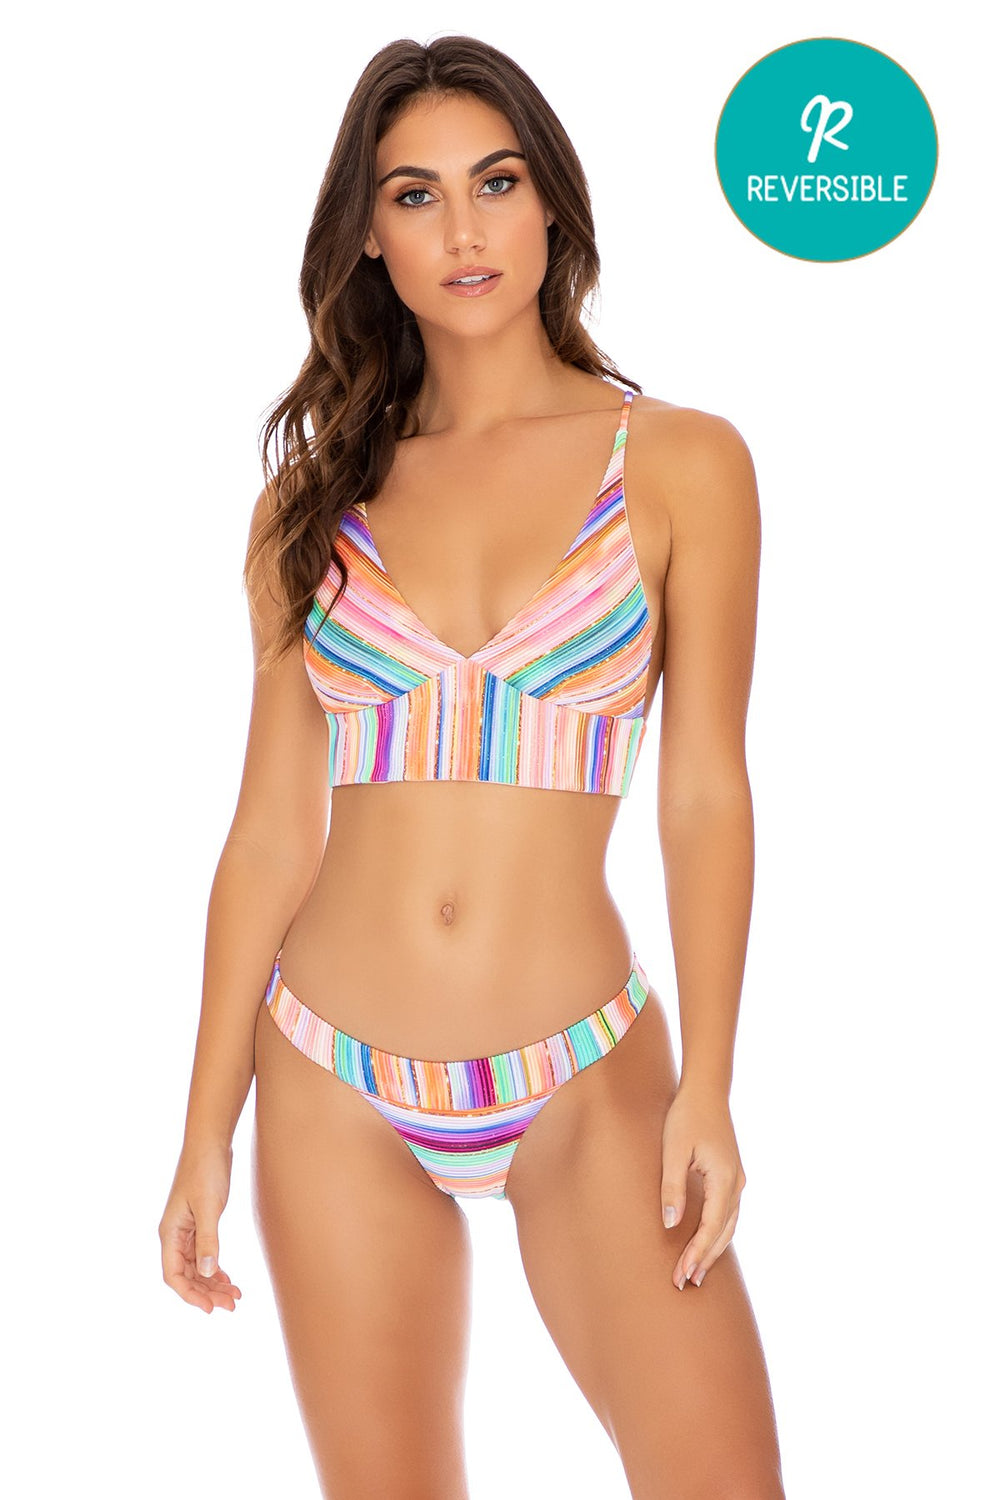 HEAT WAVES - Cross Back Bustier Top & Banded Moderate Bottom • Multicolor